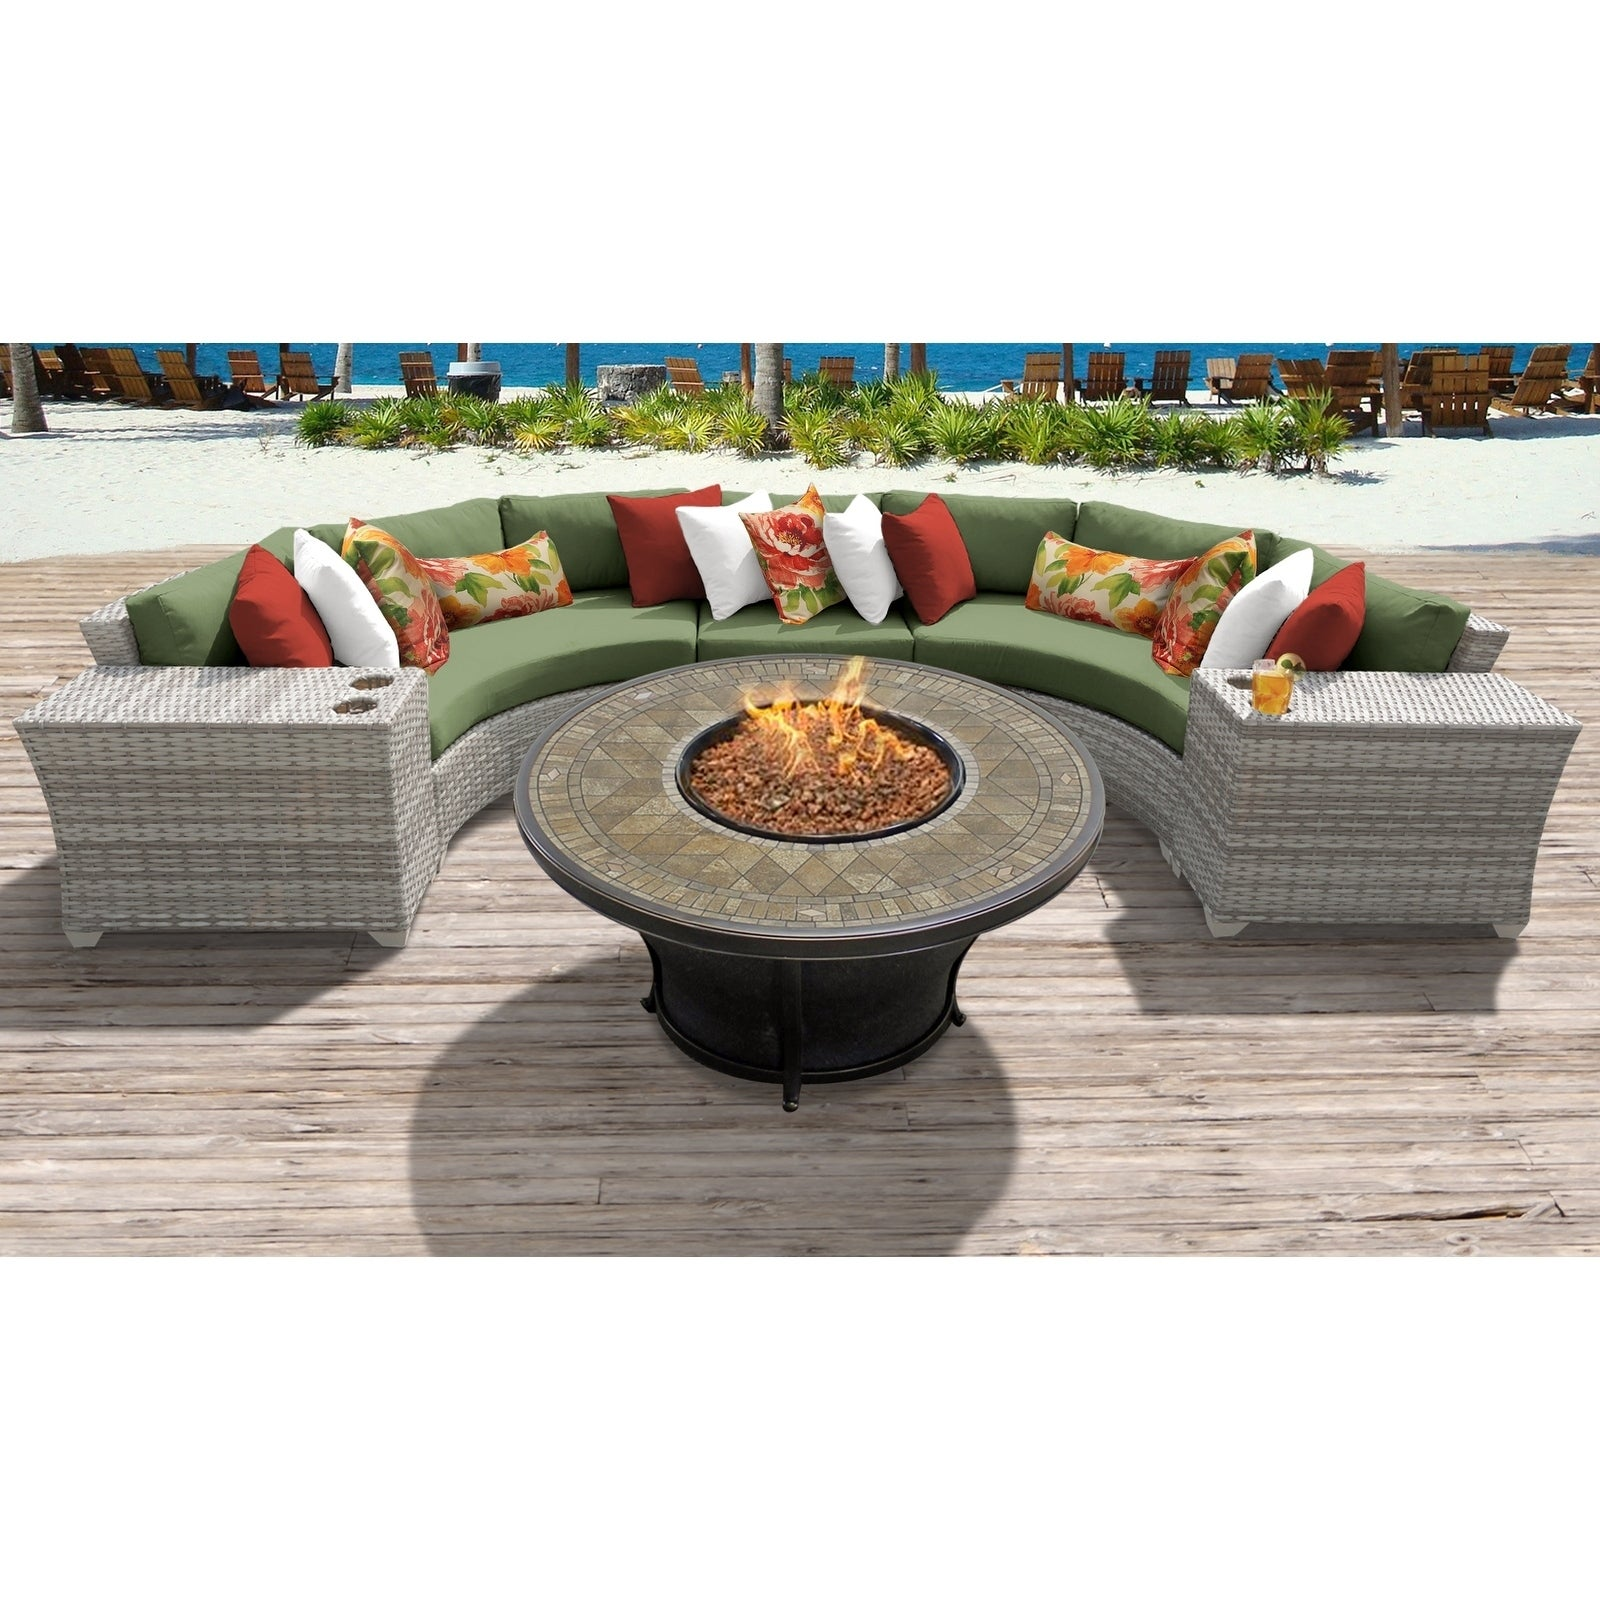 Fairmont 6 Piece Outdoor Wicker Patio Furniture Set 06a Free Shipping Today 26274051